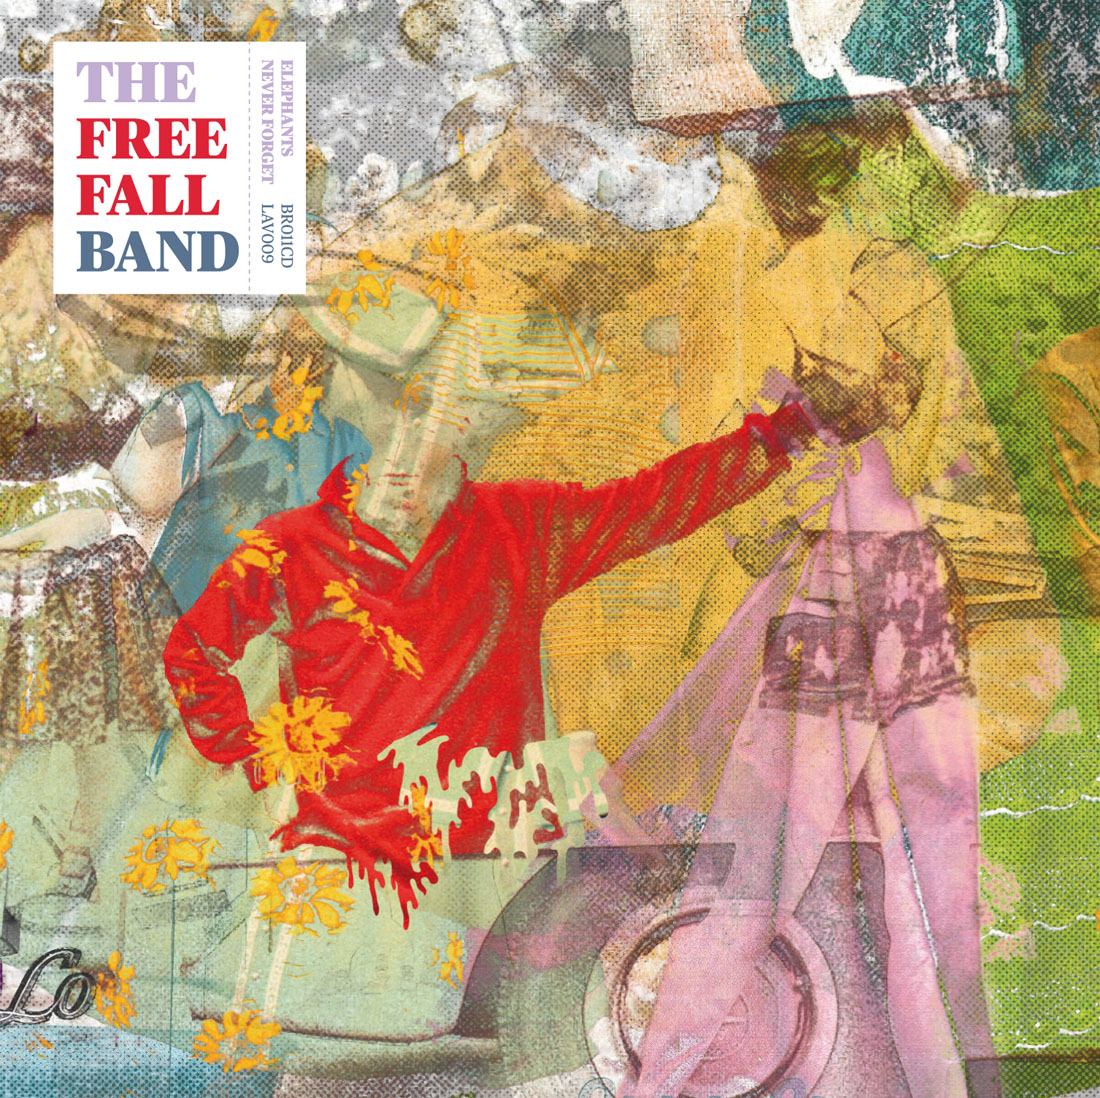 The Free Fall Band / Elefants never forget